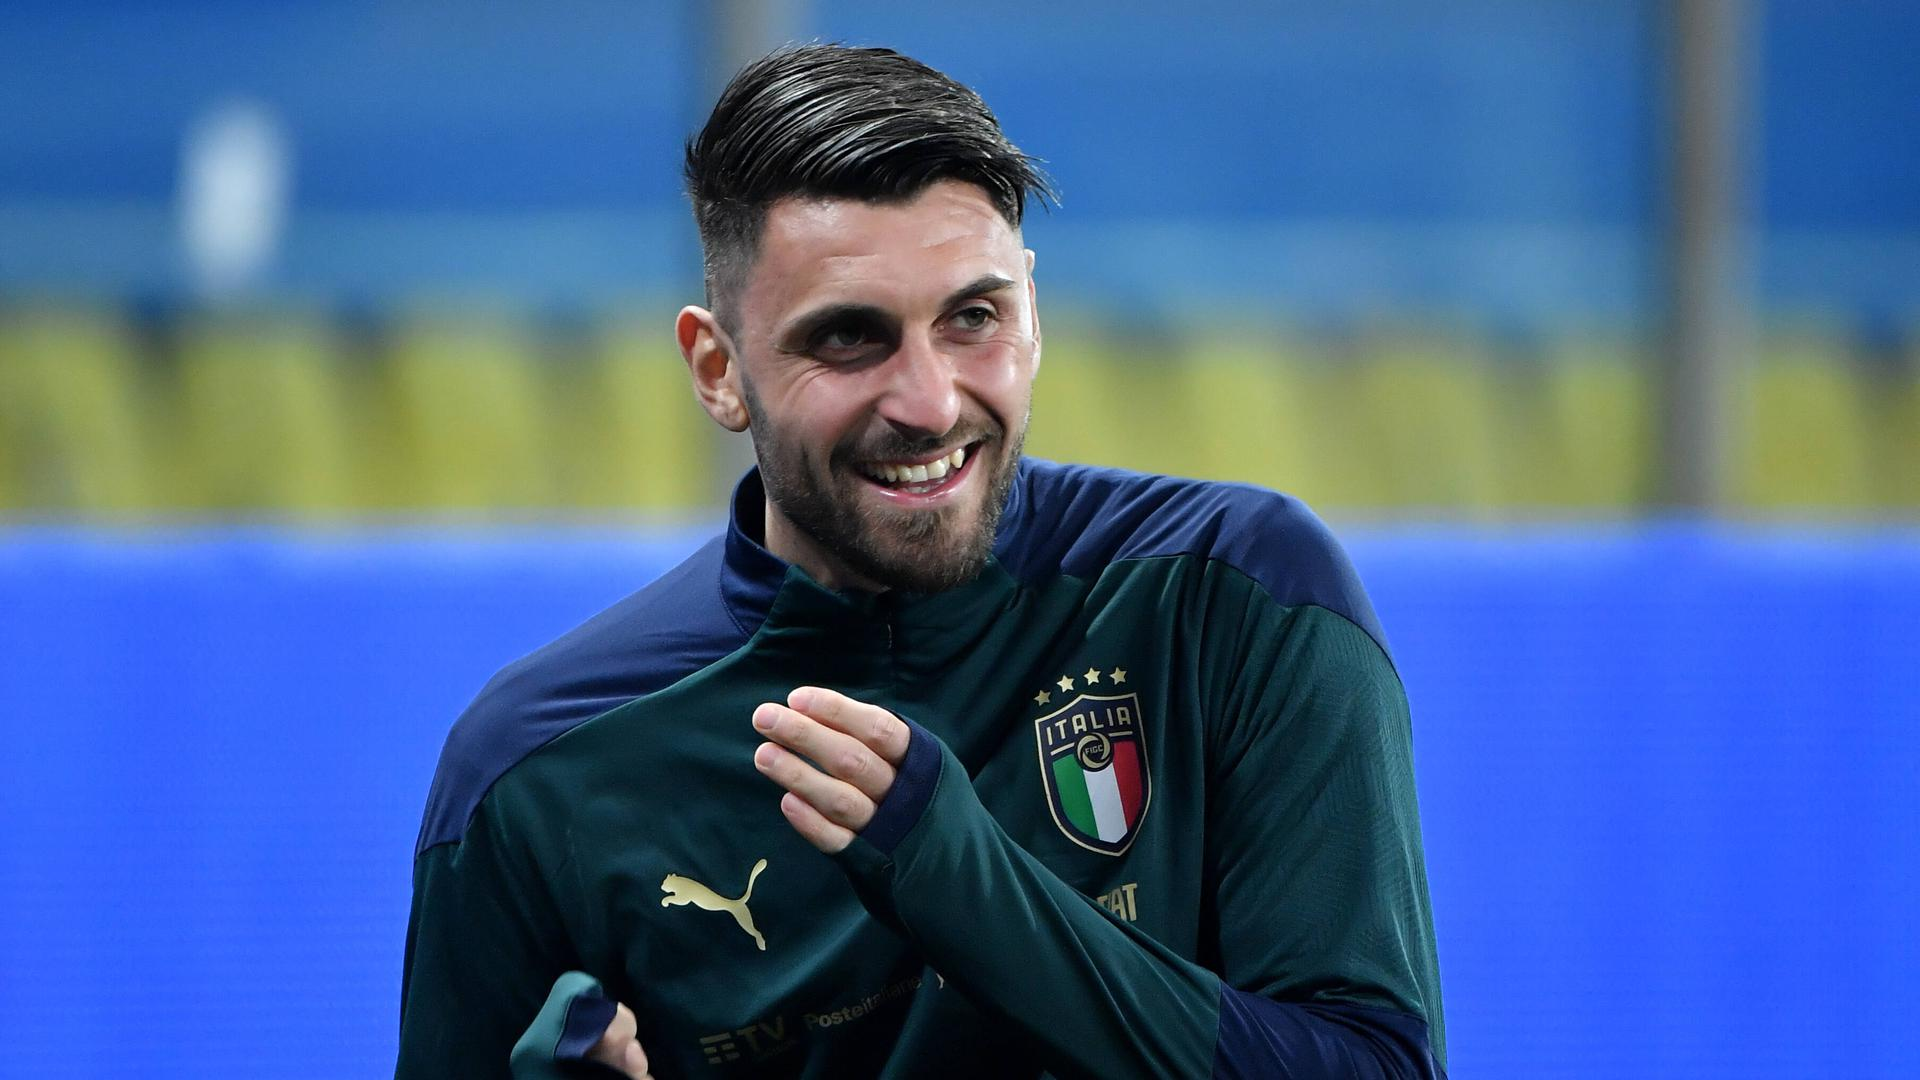 Vincenzo Grifo of Italy of Italy during the FIFA World Cup, WM, Weltmeisterschaft, Fussball 2022 qualification football match between Italy and Northerrn Ireland at stadio Ennio Tardini in Parma Italy, March 25th, 2021. Photo Andrea Staccioli / Insidefoto andreaxstaccioli